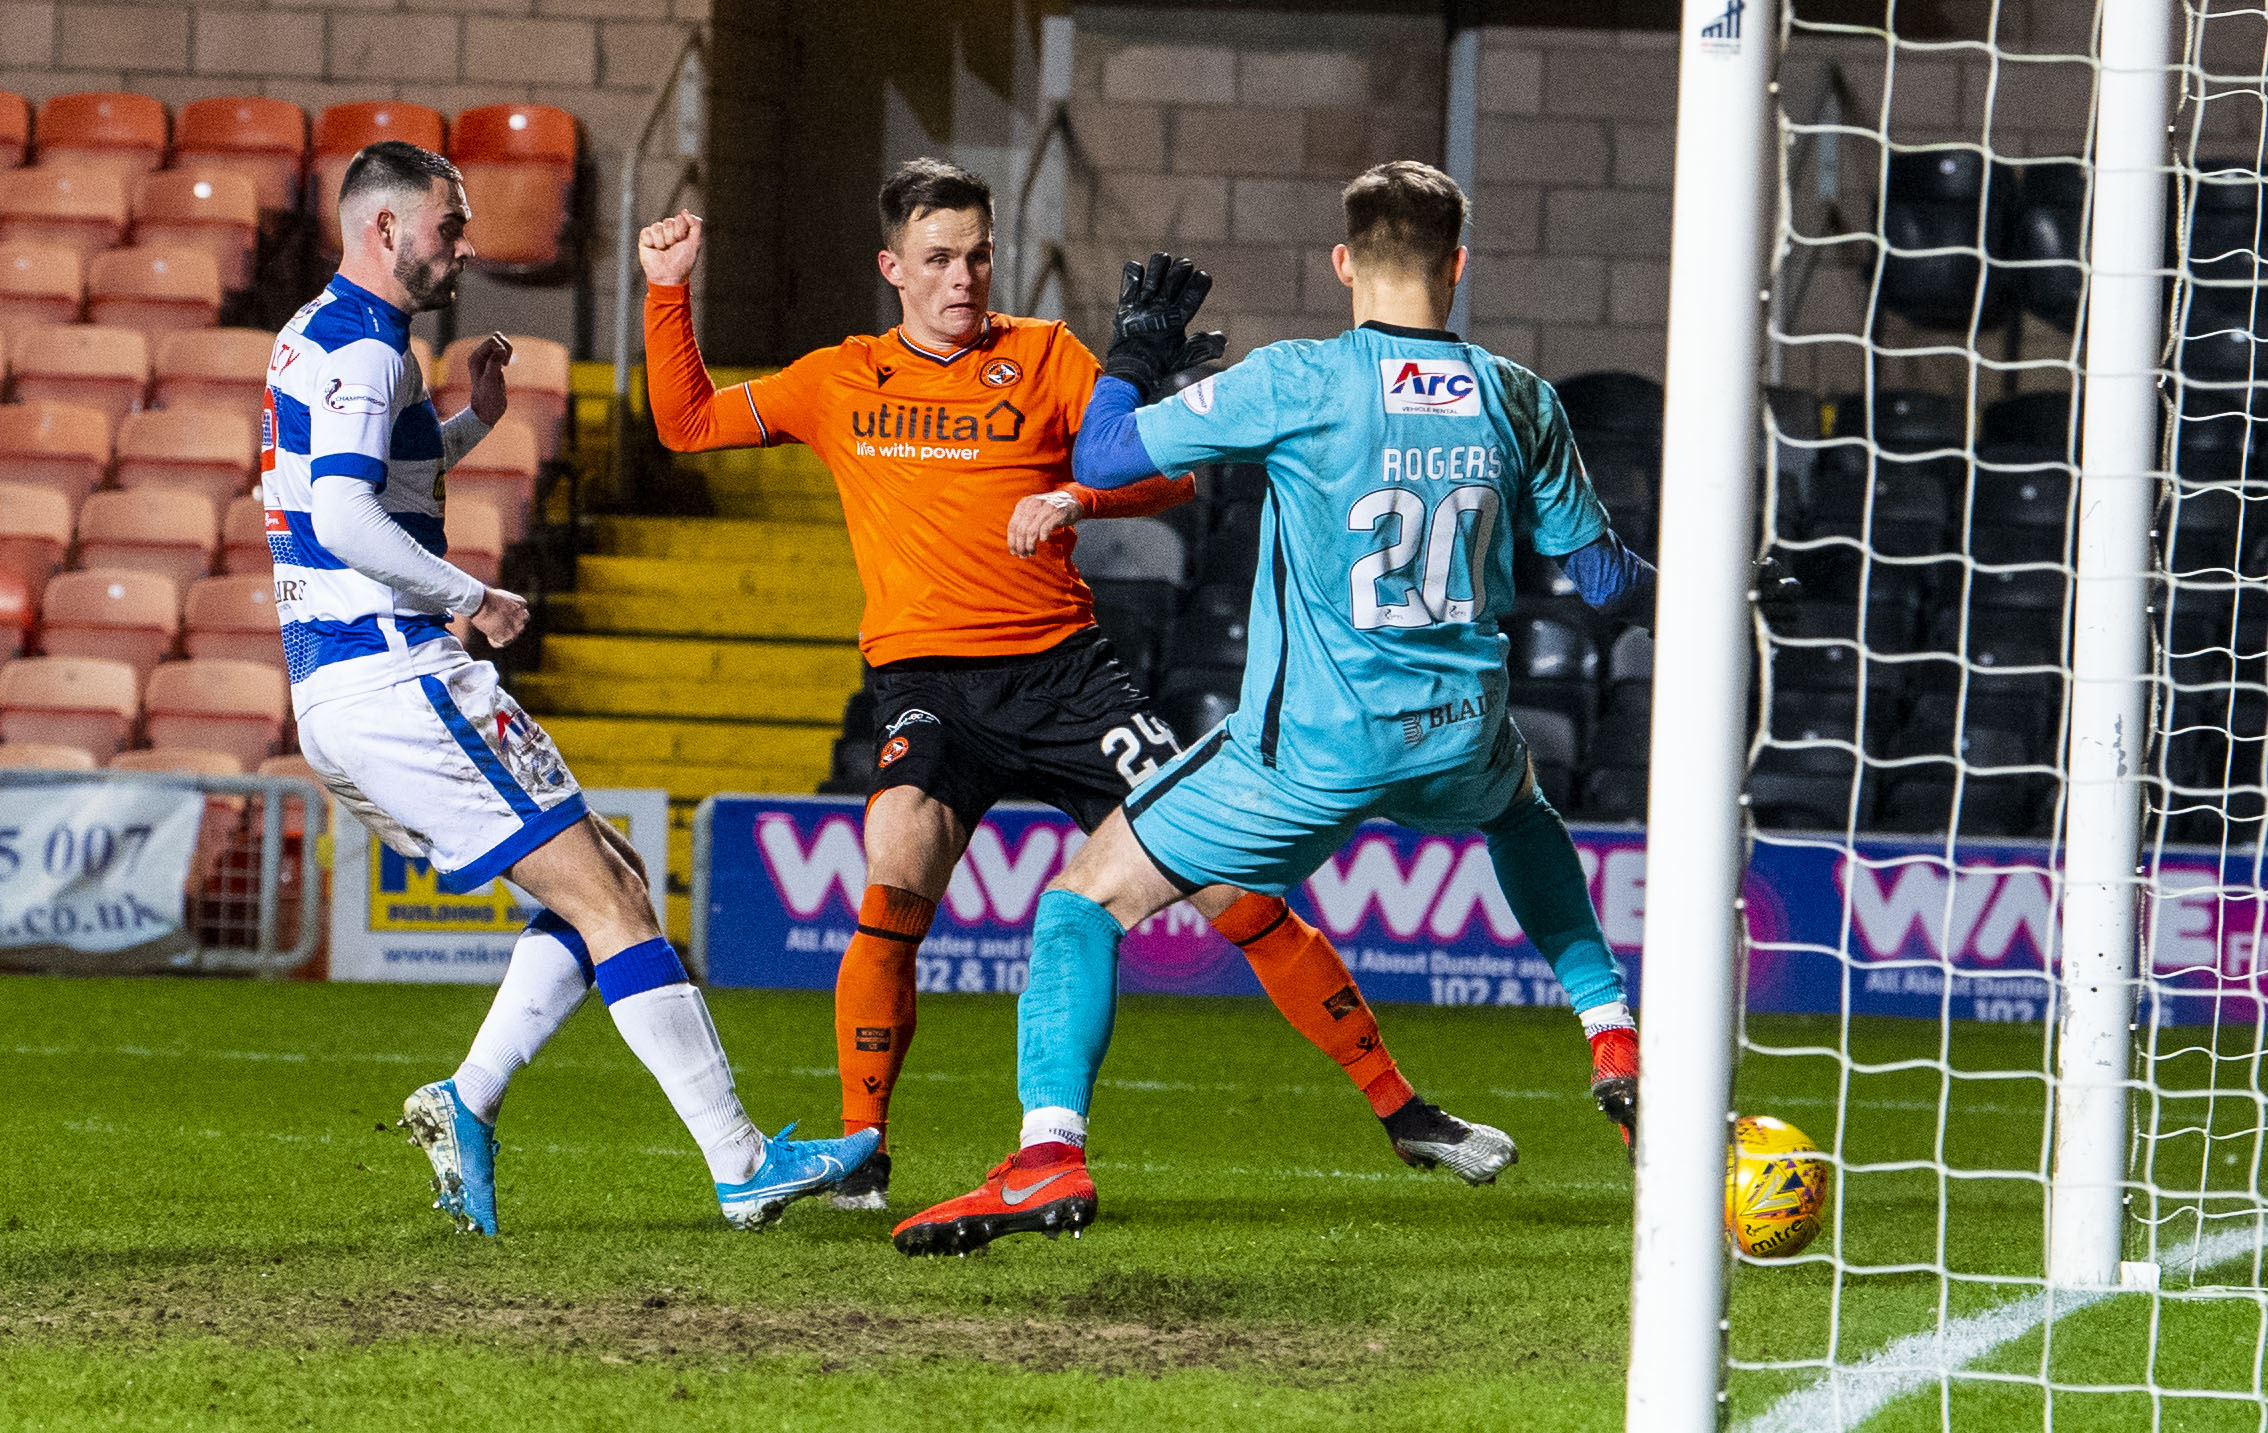 Lawrence Shankland scores to make it 1-1.